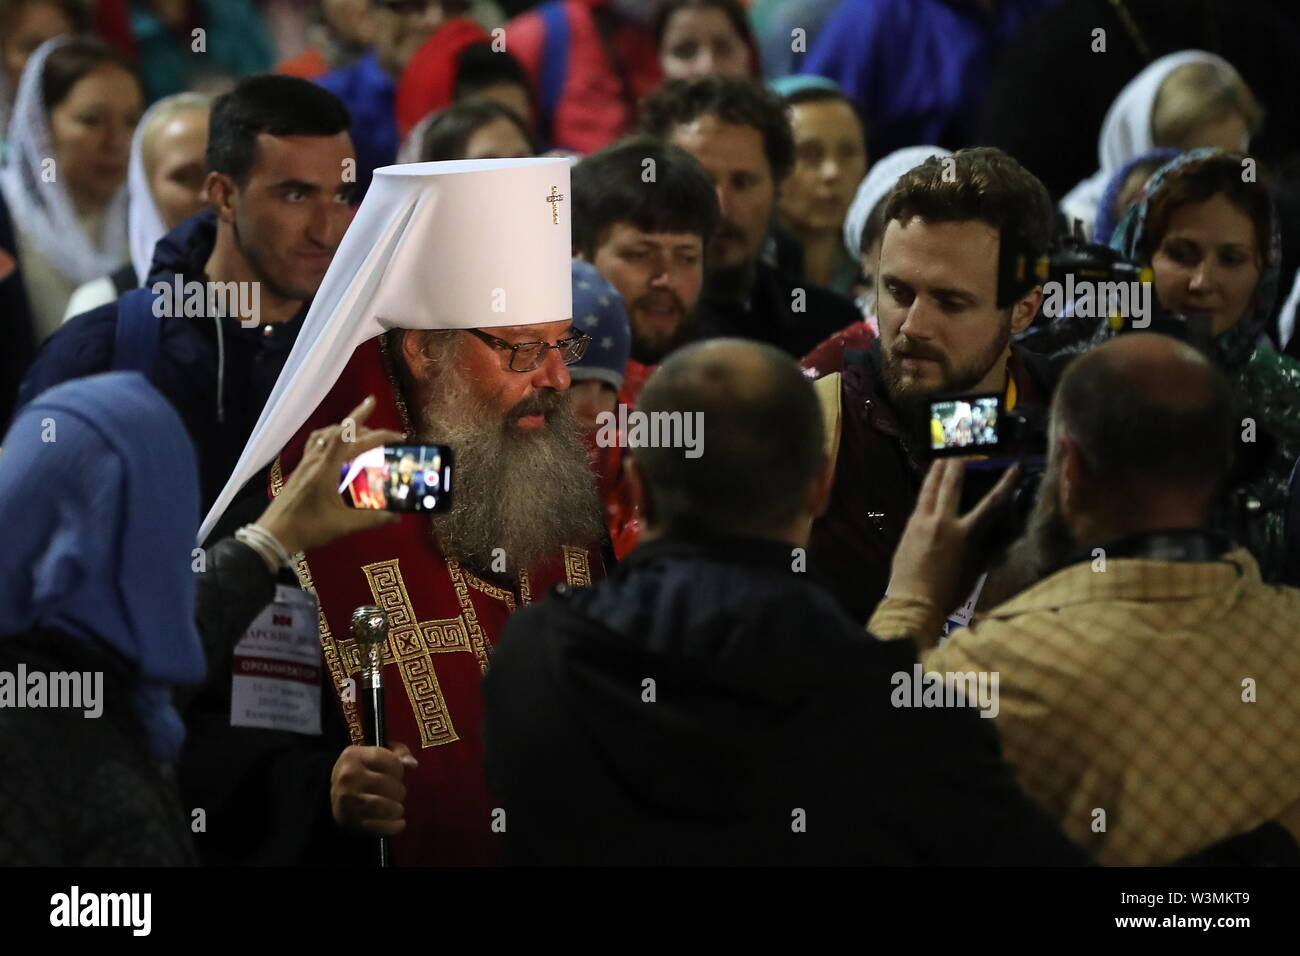 Yekaterinburg, Russia. 17th July, 2019. YEKATERINBURG, RUSSIA - JULY 17, 2019: Metropolitan Kirill (L front) of Yekaterinburg and Verkhoturye takes part in a religious procession in memory of the Russian royal family from the Church of All Saints in Yekaterinburg to the Ganina Yama Monastery in the Sverdlovsk Region. Emperor Nicholas II of Russia and his family were executed on July 17, 1918. The procession is held as part of the Tsar Days Orthodox Culture Festival. Donat Sorokin/TASS Credit: ITAR-TASS News Agency/Alamy Live News - Stock Image